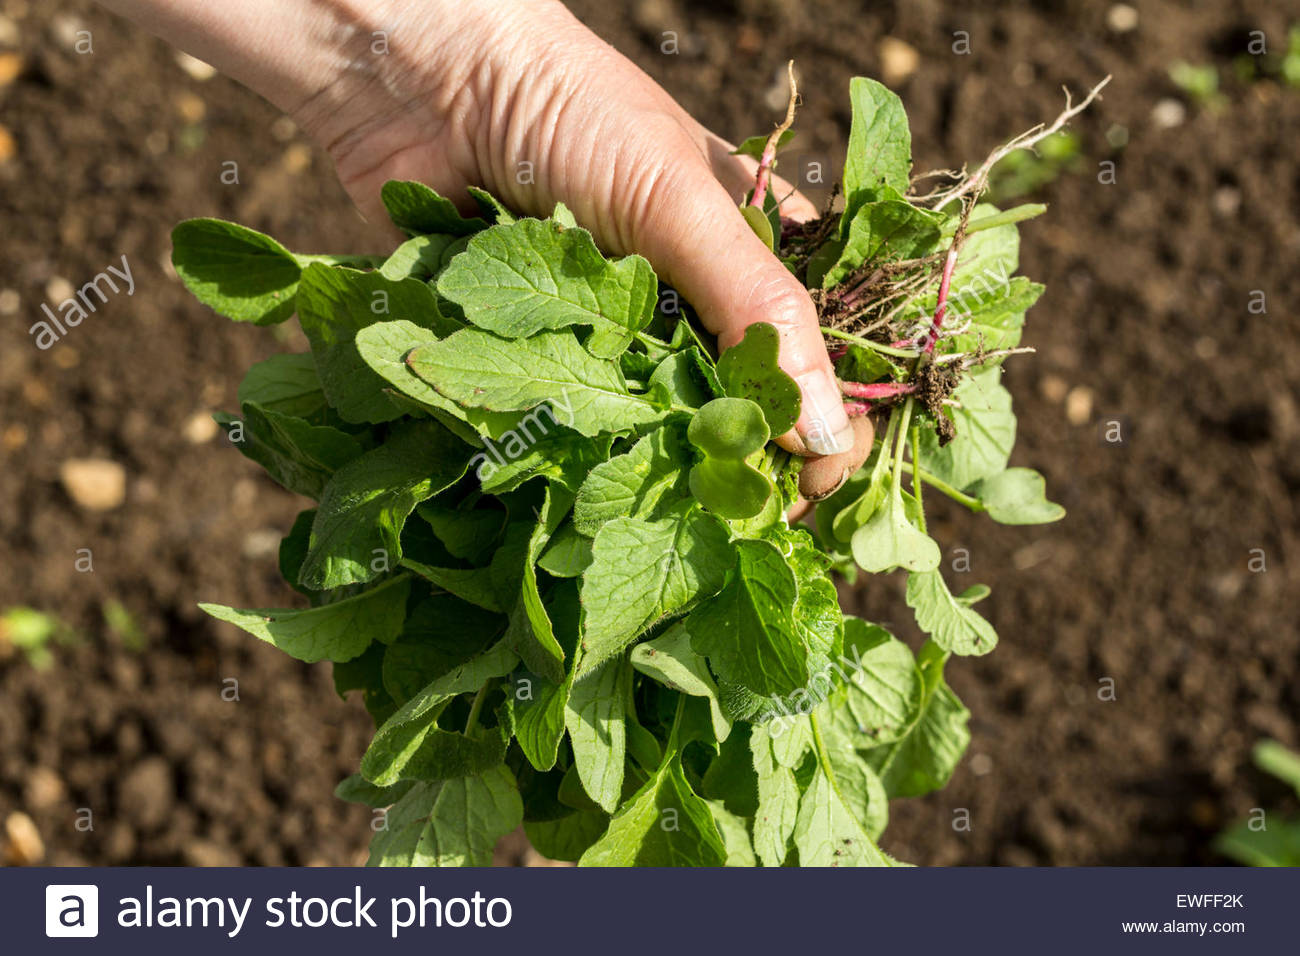 Gardener with a handful of radish seedlings that have been thinned out - Stock Image